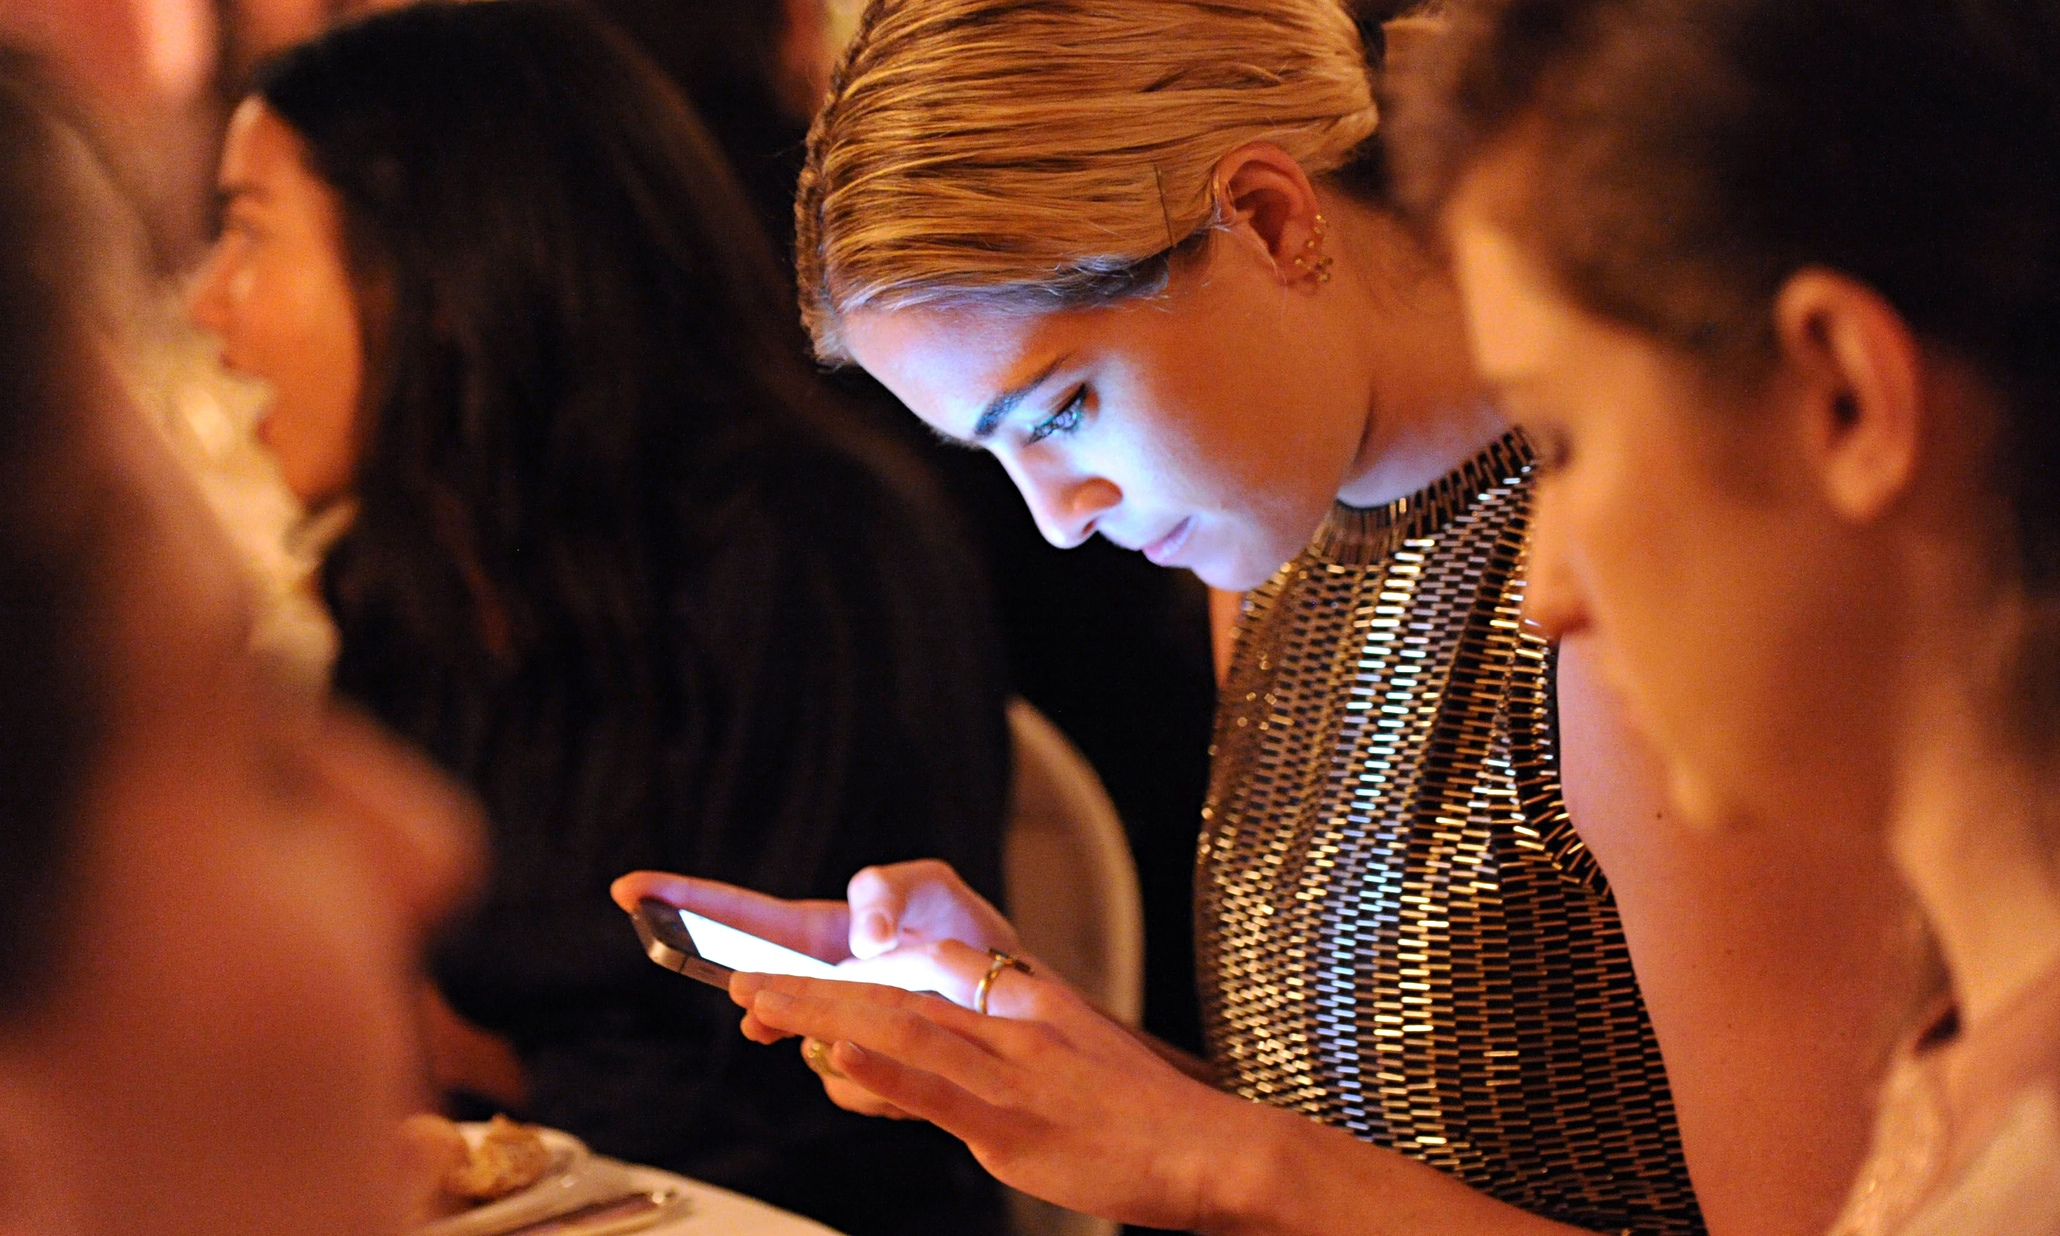 Looking at your mobile? You're cutting off a world of creativity – and flirtation